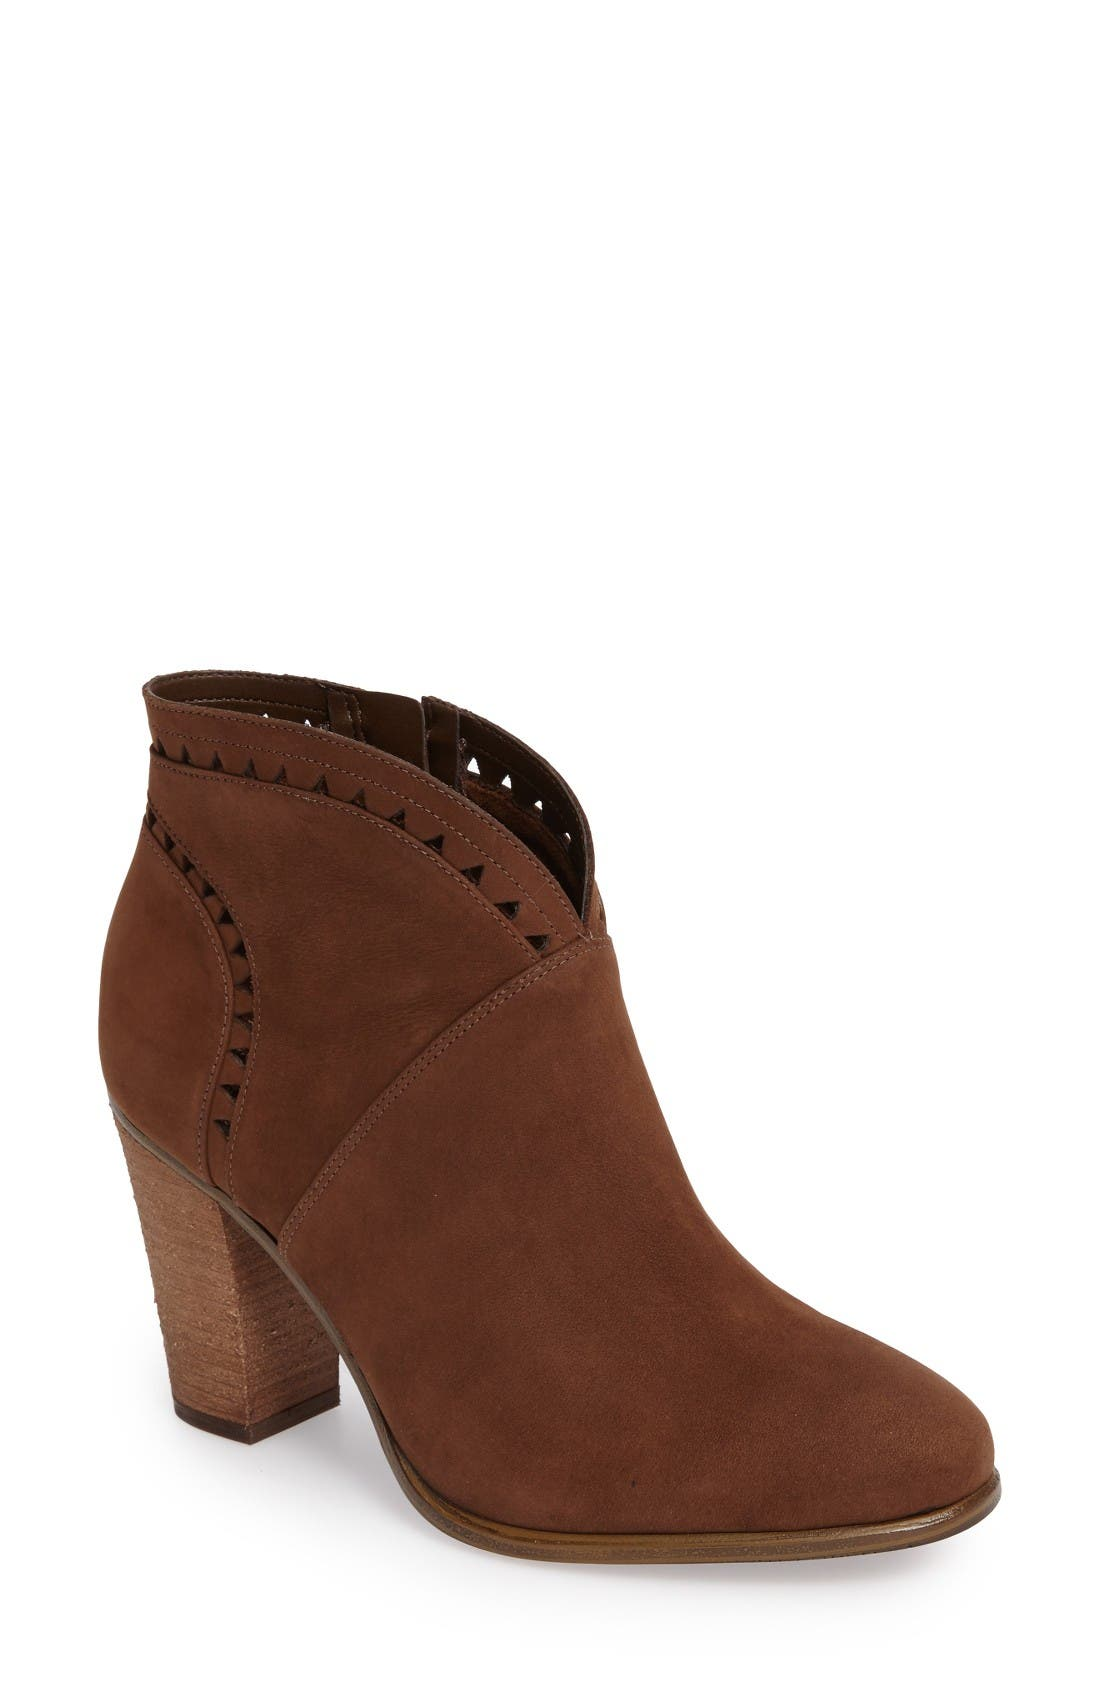 Main Image - Vince Camuto Fritan Bootie (Women)